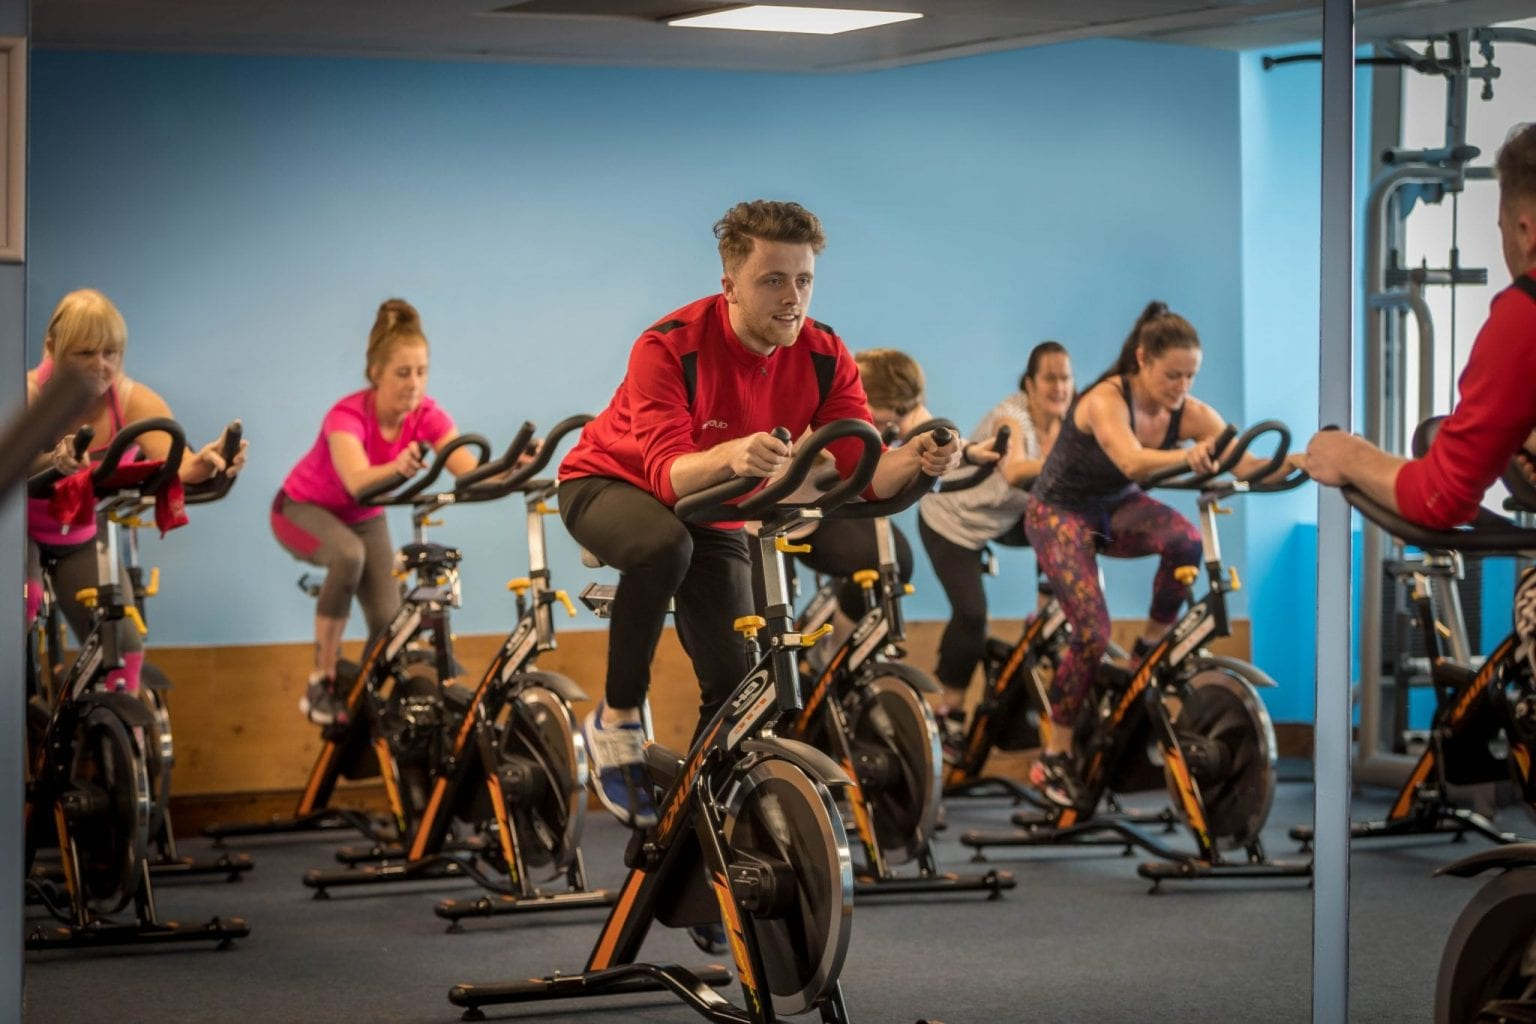 Keep up your workout routine in Club Vitae gym at Maldron Hotel Tallaght